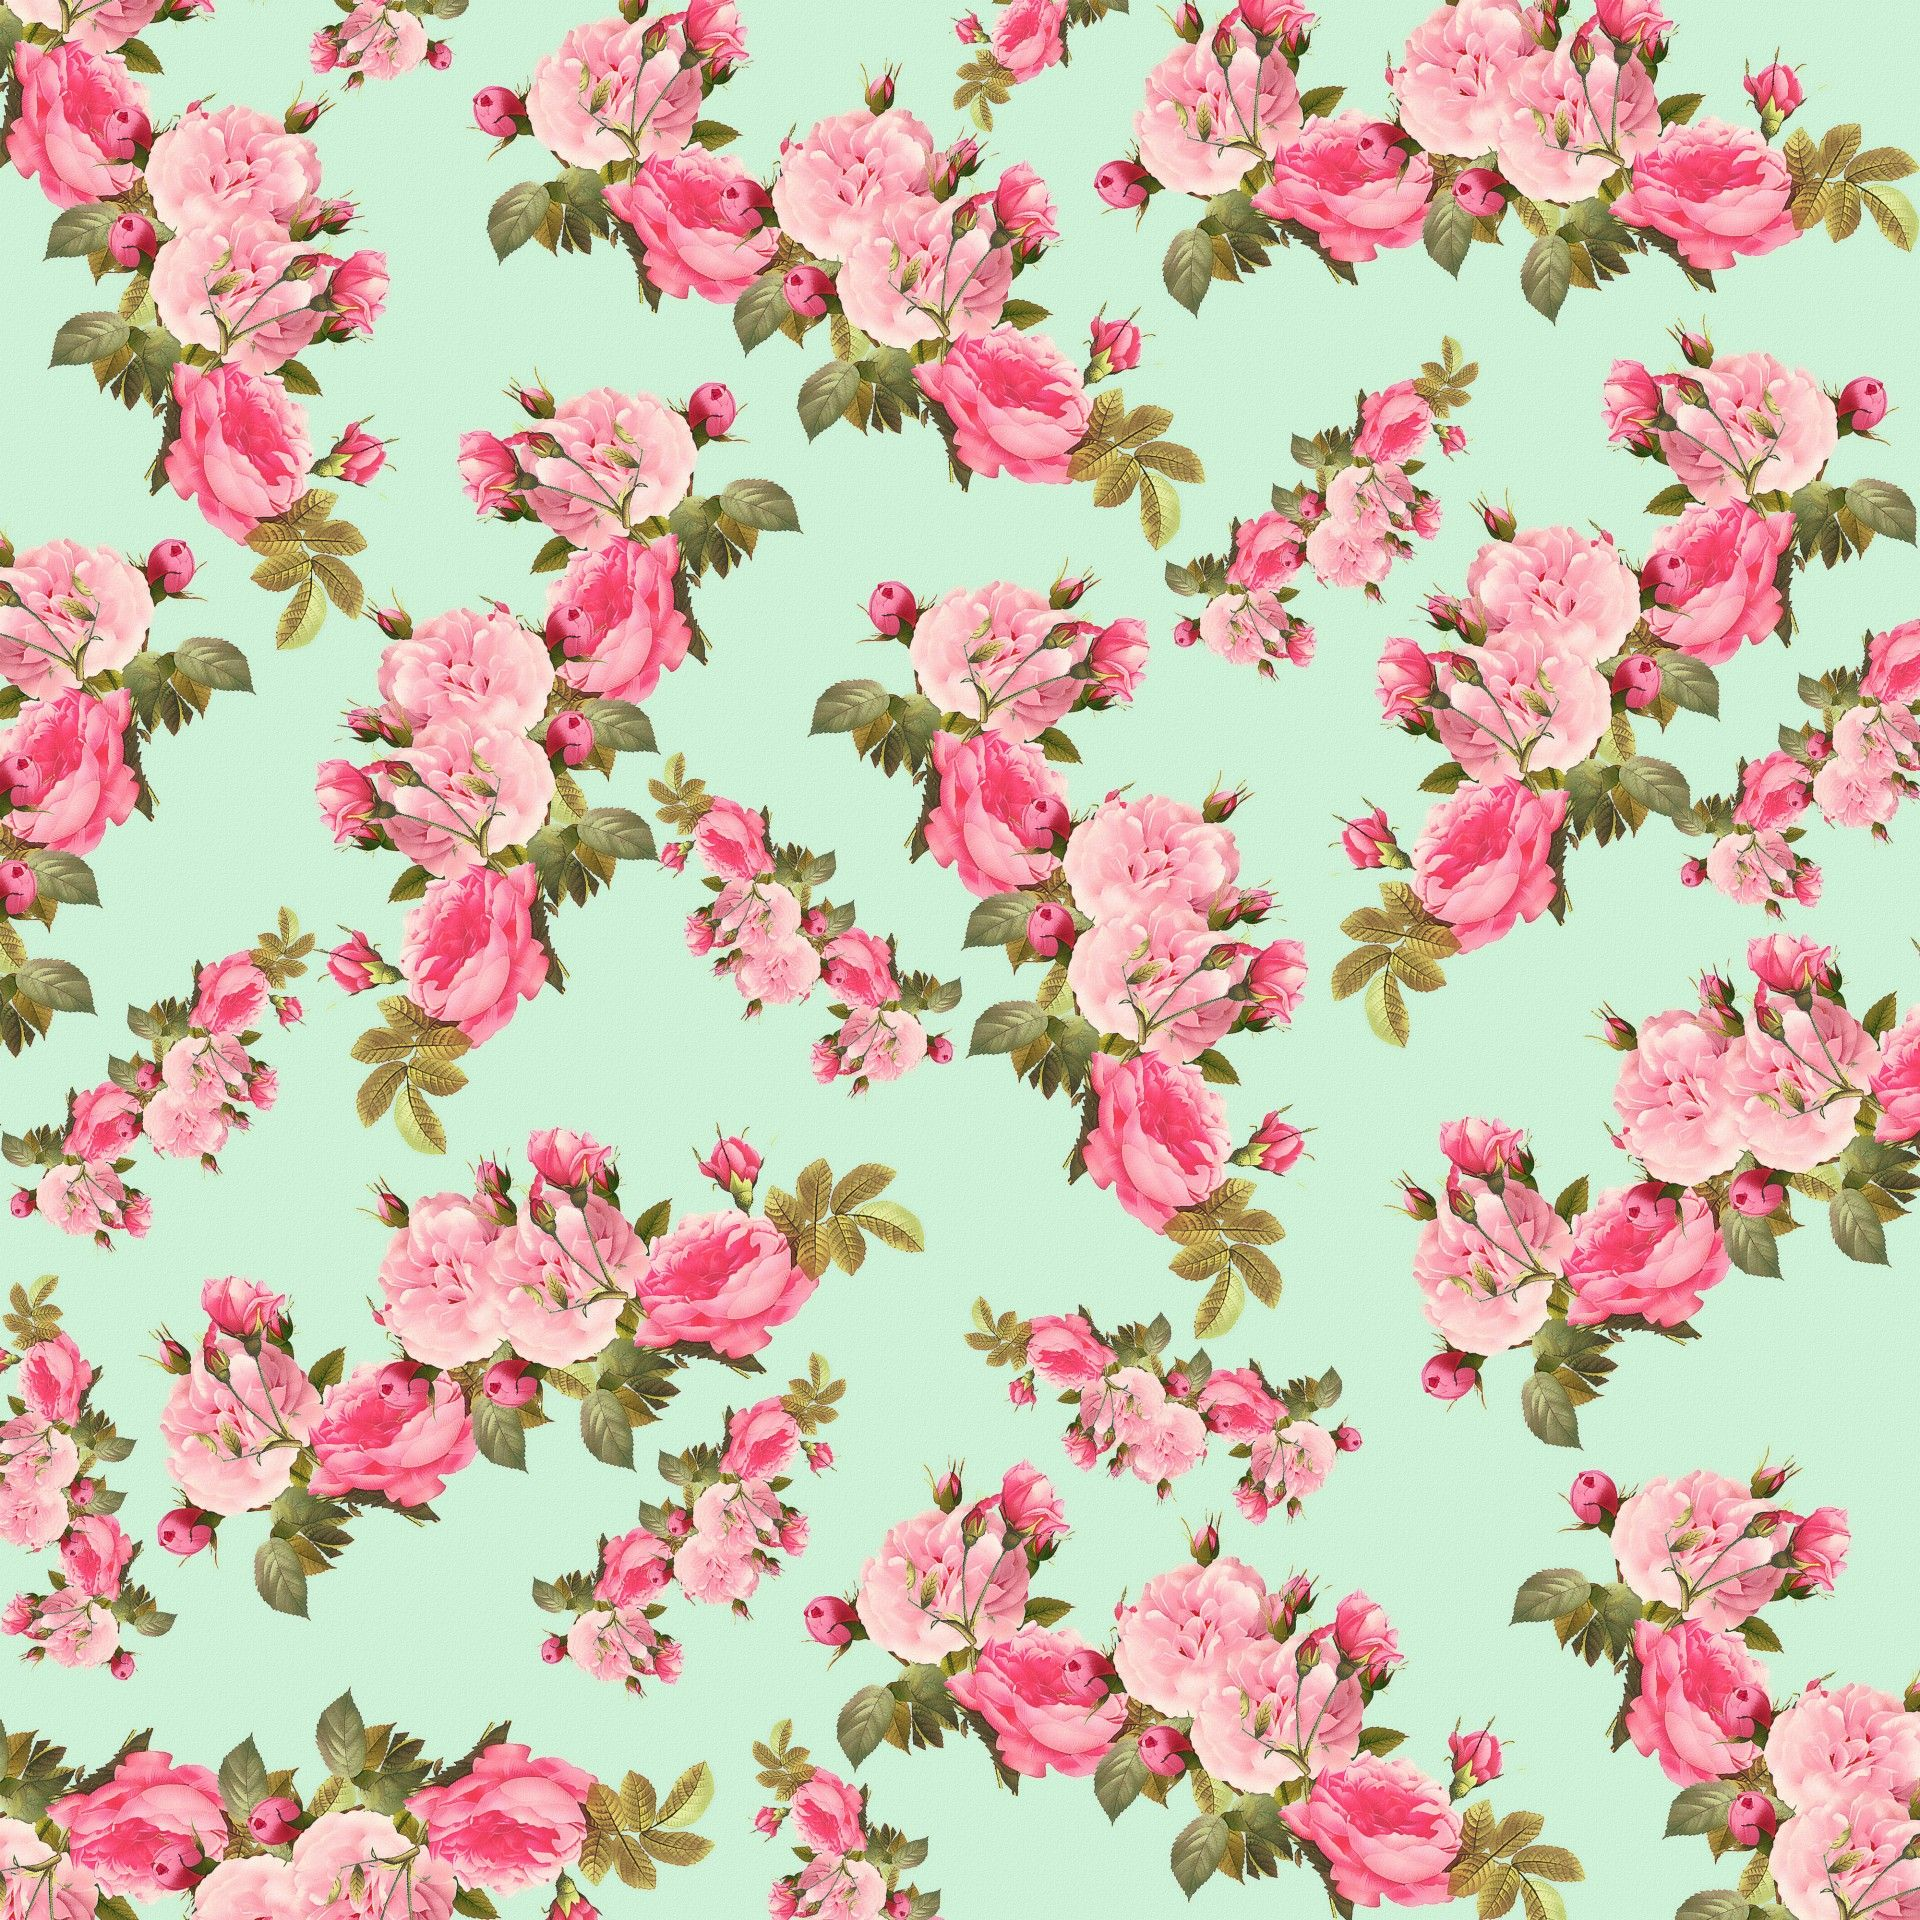 Vintage Roses Floral Background Free Stock Photo Public Domain 3623